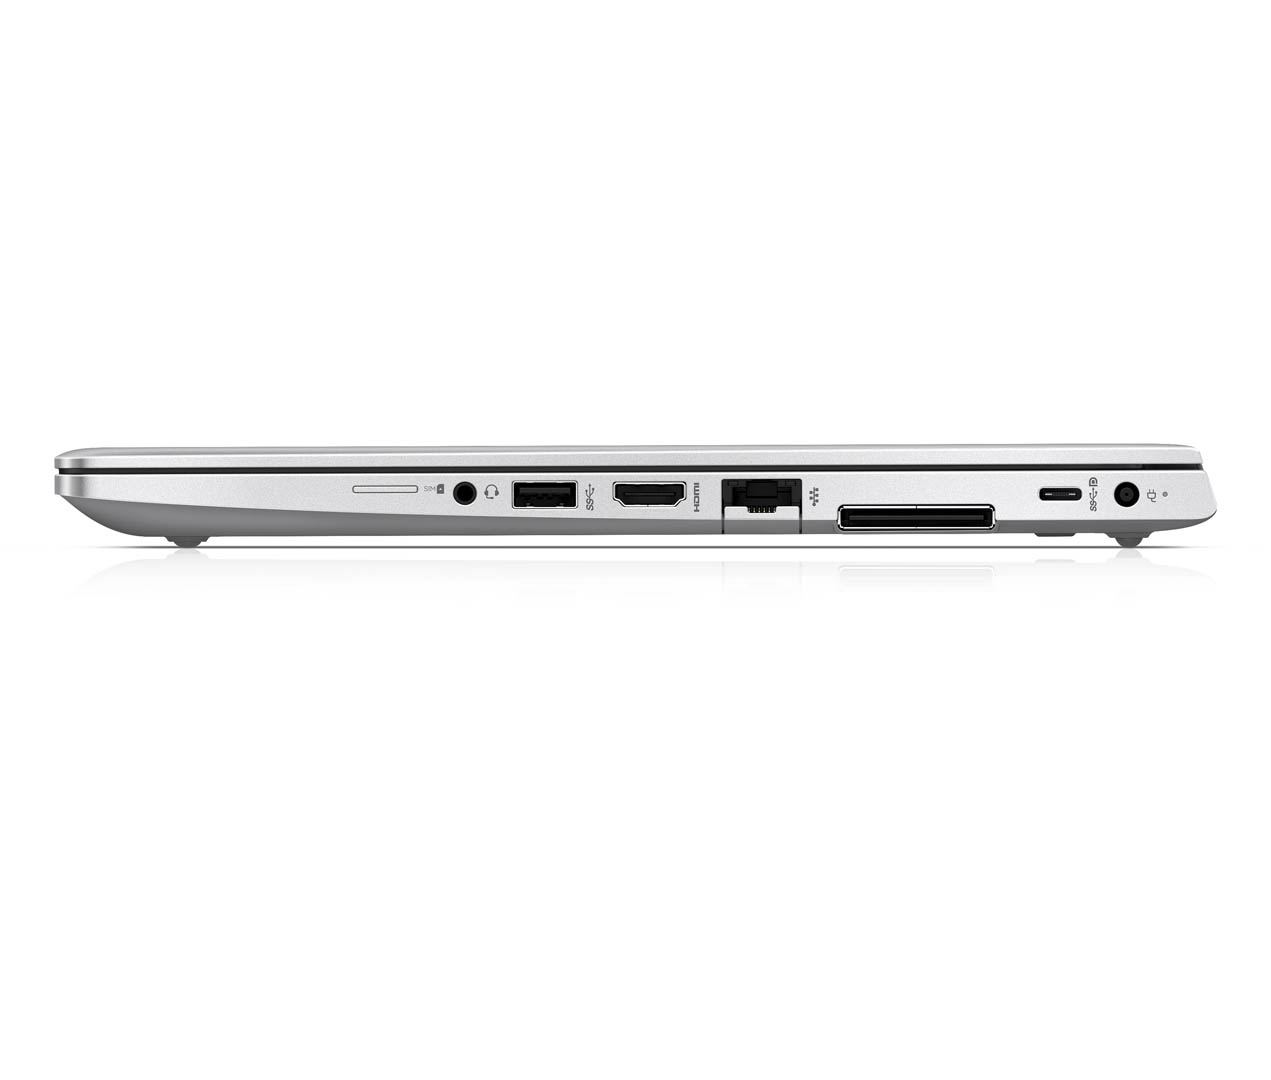 HP annuncia gli EliteBook 700 G6 e l'HP mt45 Mobile Thin Client 6